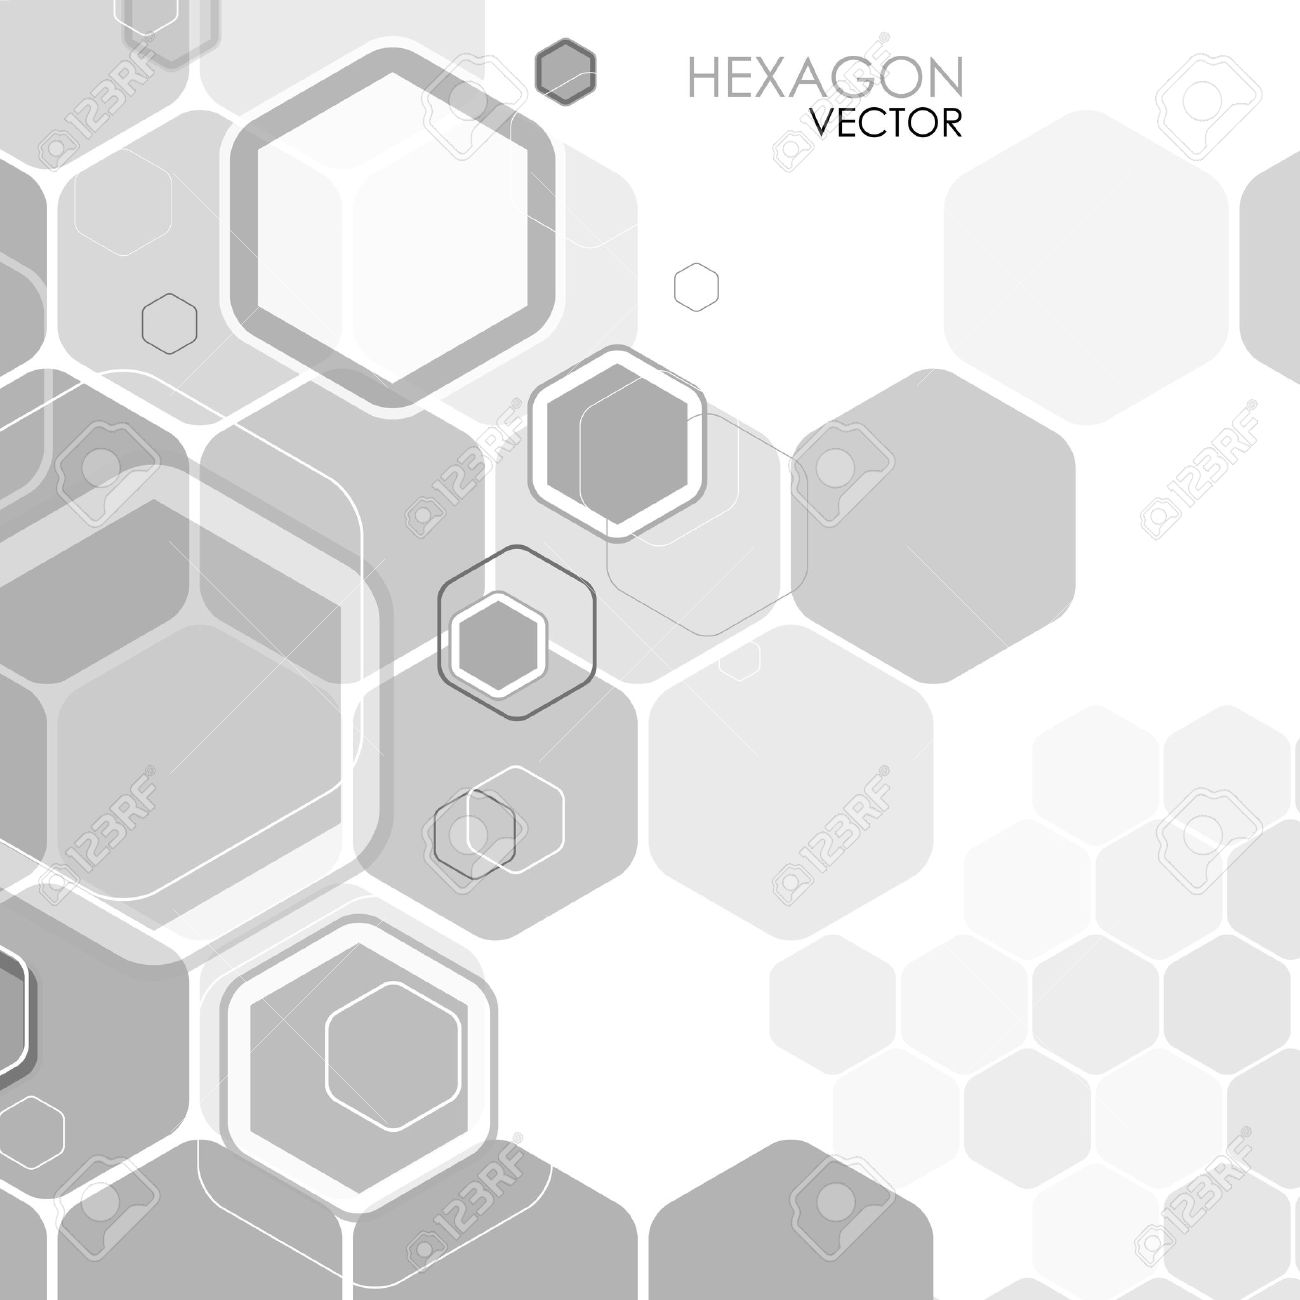 1300x1300 Hexagon Clipart Texture Free Collection Download And Share